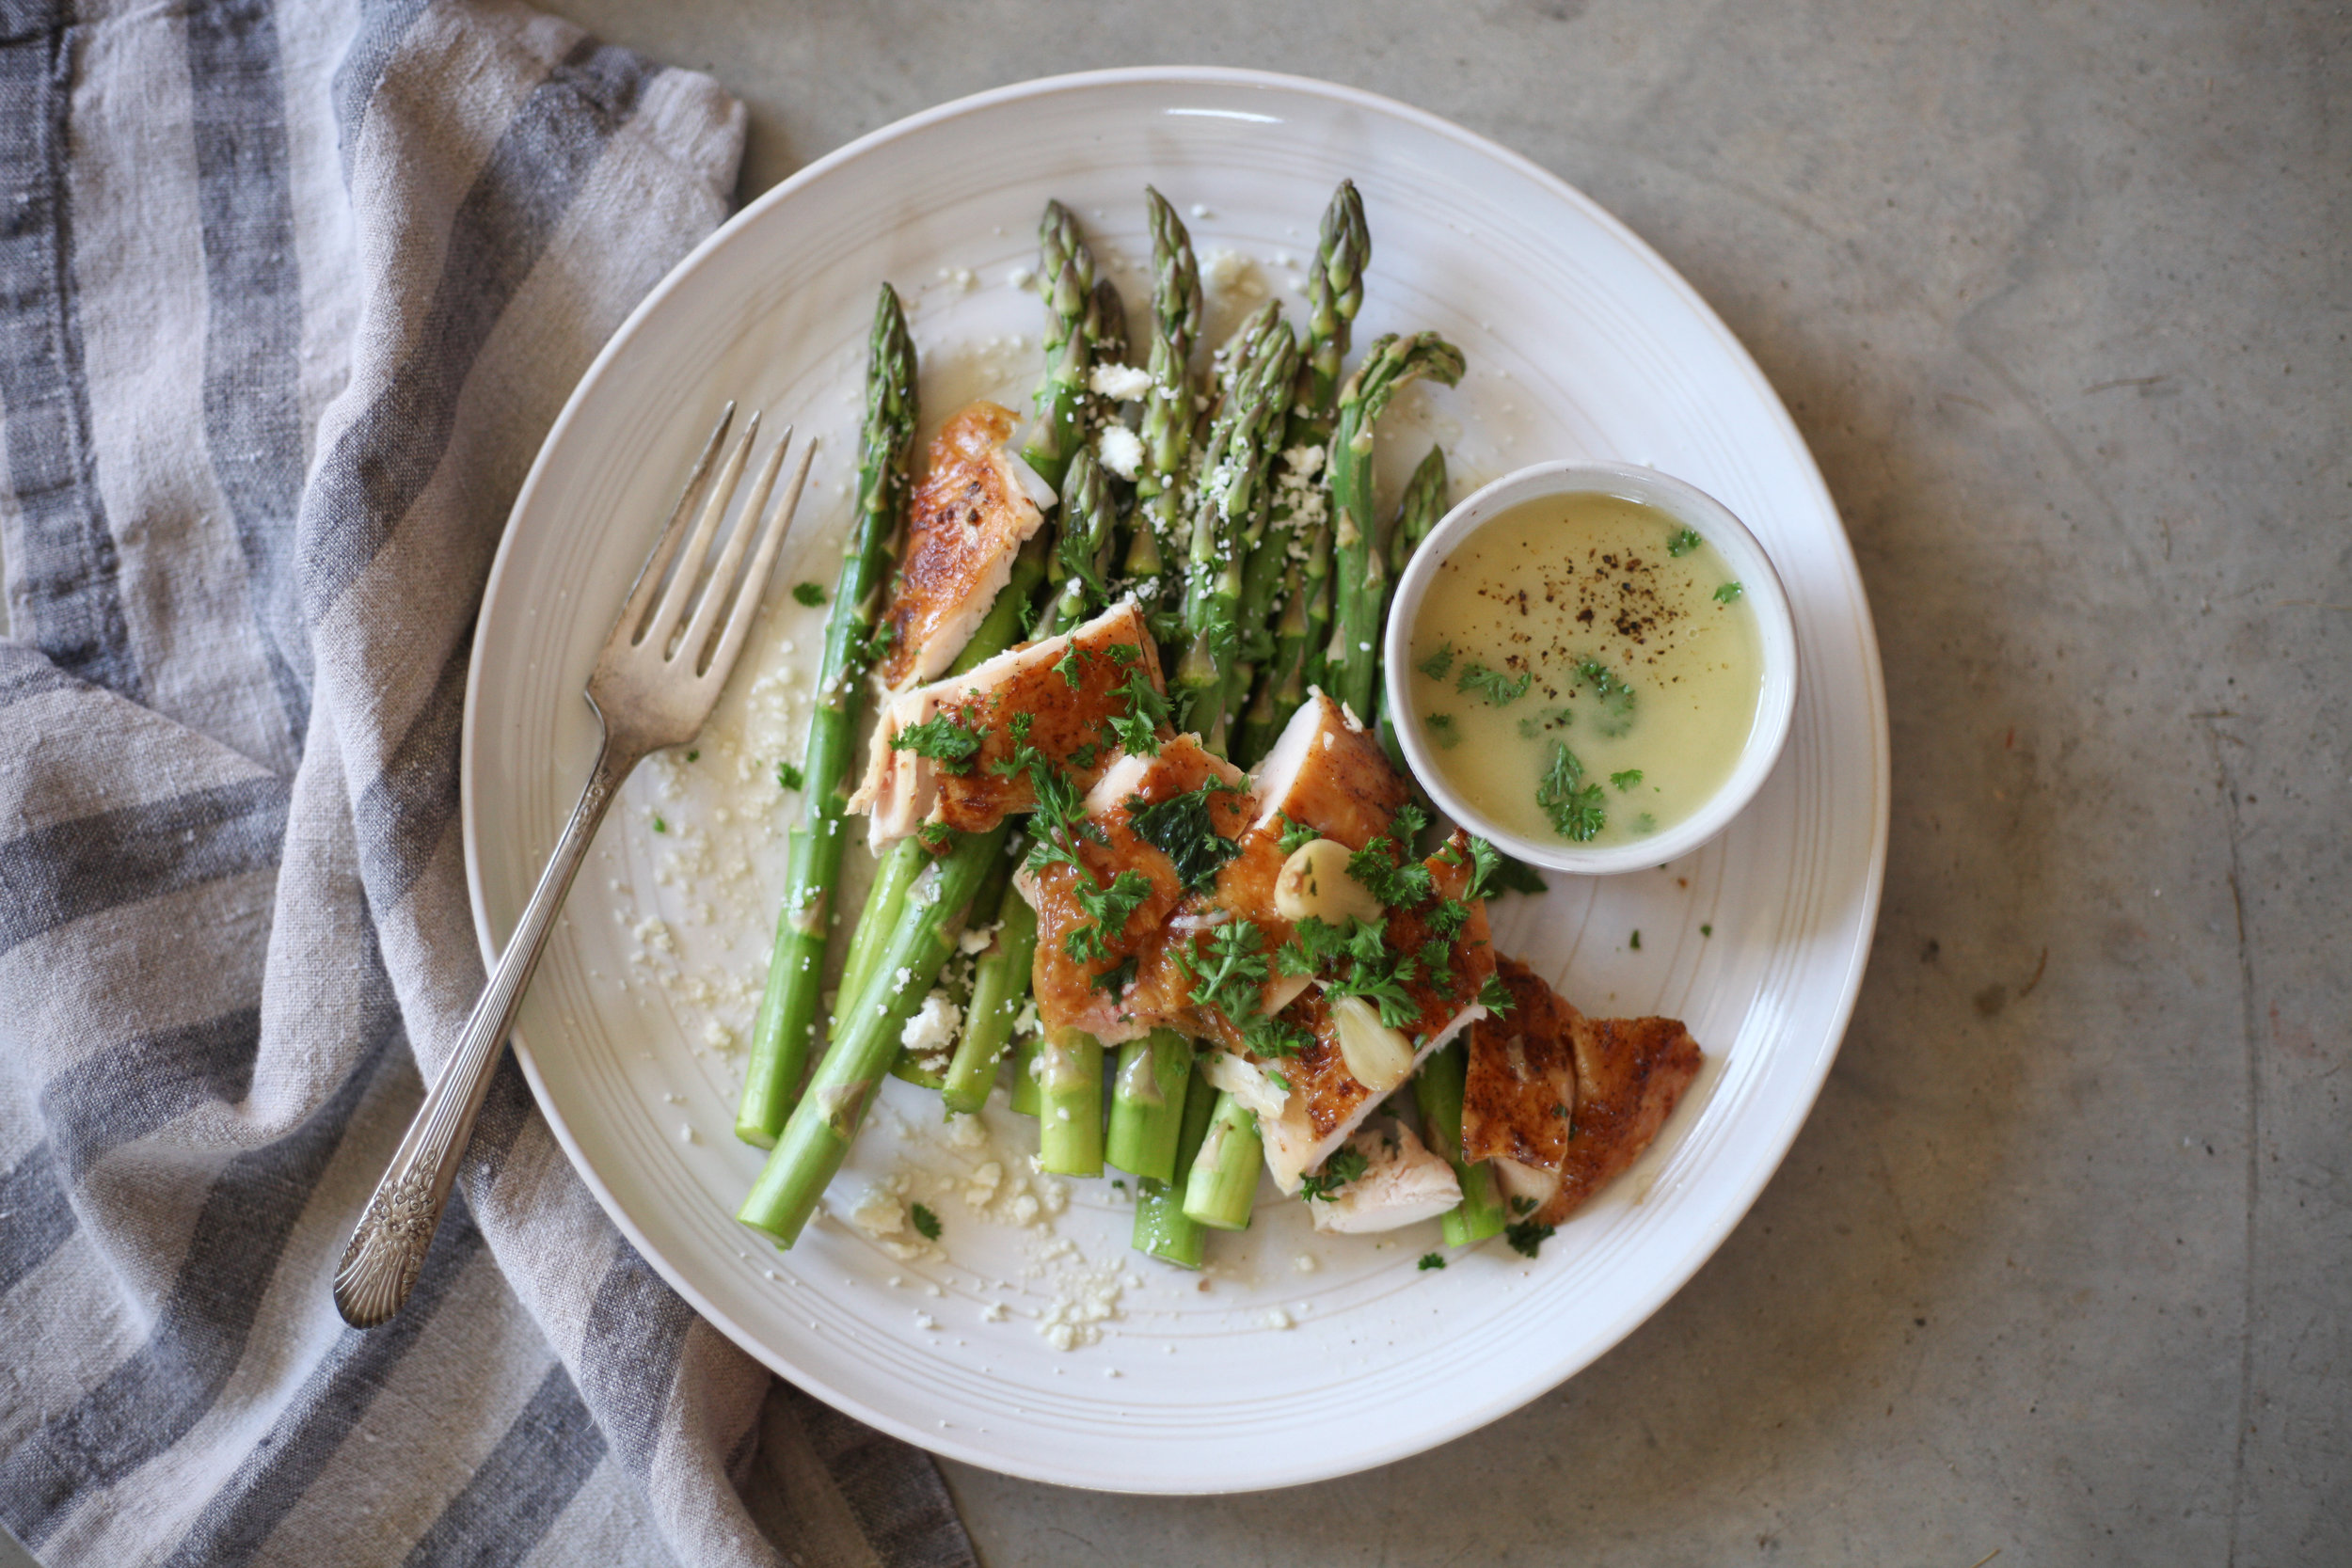 Dinners with Ease - store bought meets homemade